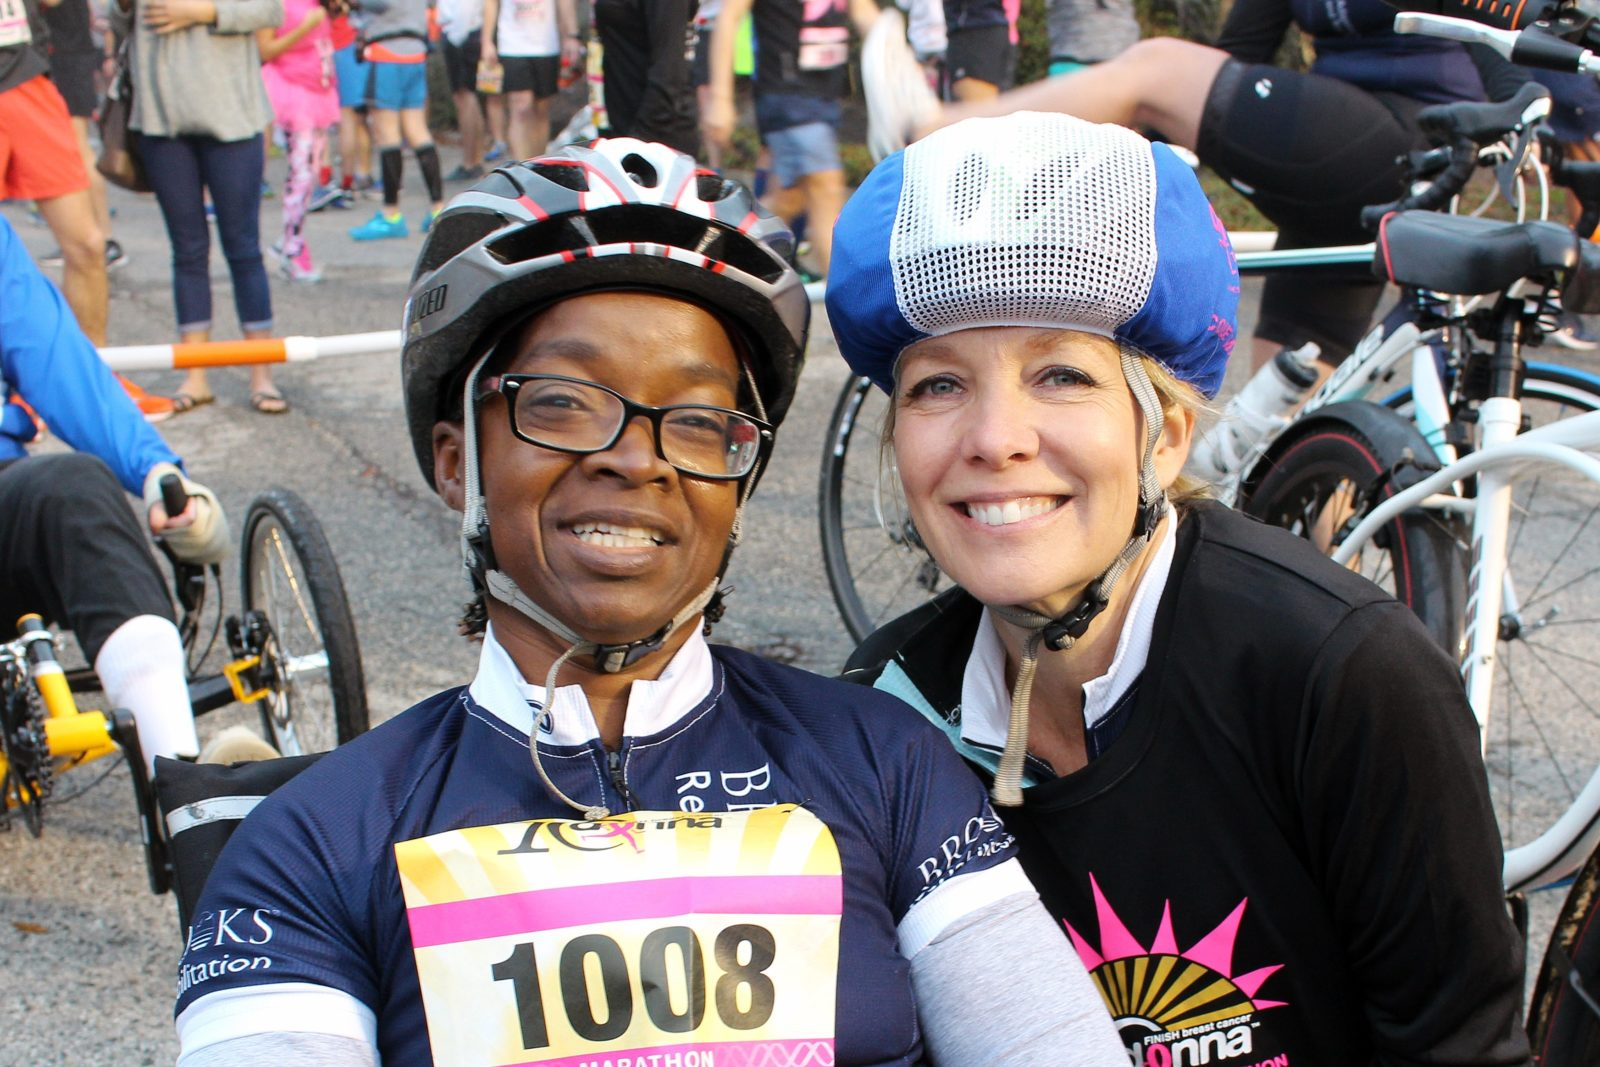 Two girls smile together as they get ready to bike 26.2 miles